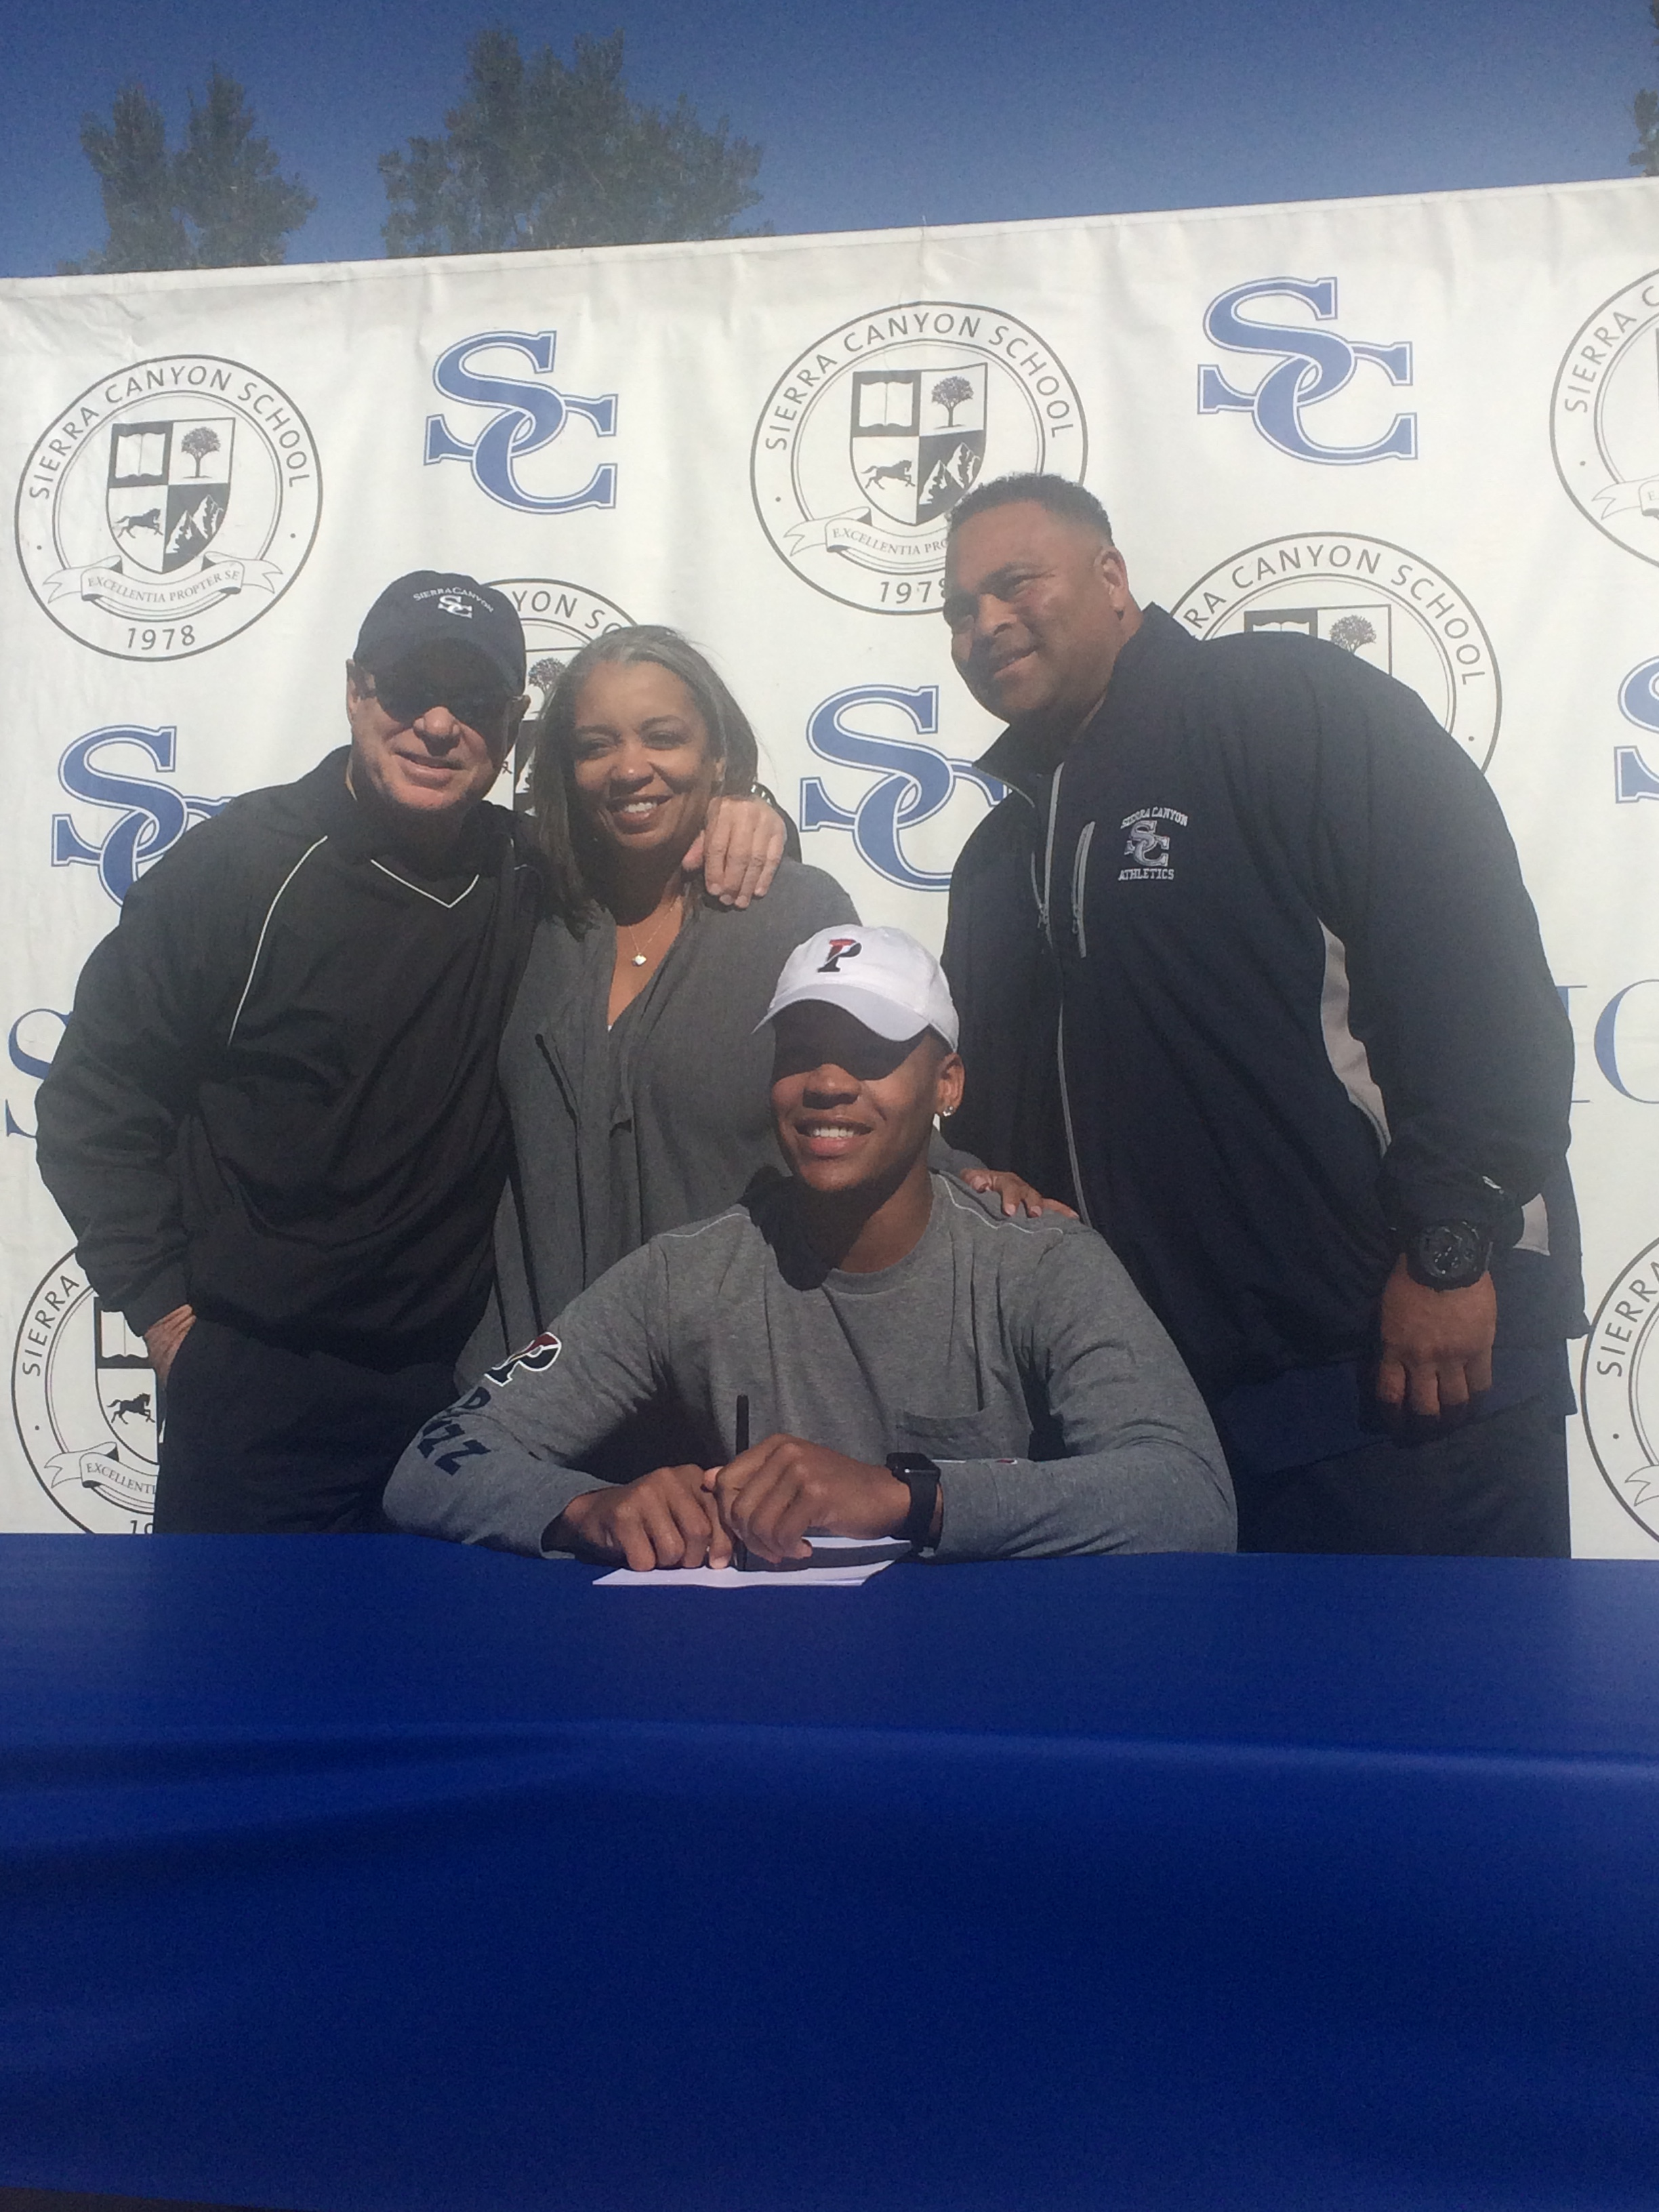 Kohl Hollinquest (Seated) poses for a picture with his mother (center), one of the two founders of Sierra Canyon, Howard Wang (Left), and Lower/Middle School Athletic Coordinator Steve Dasher (Right)